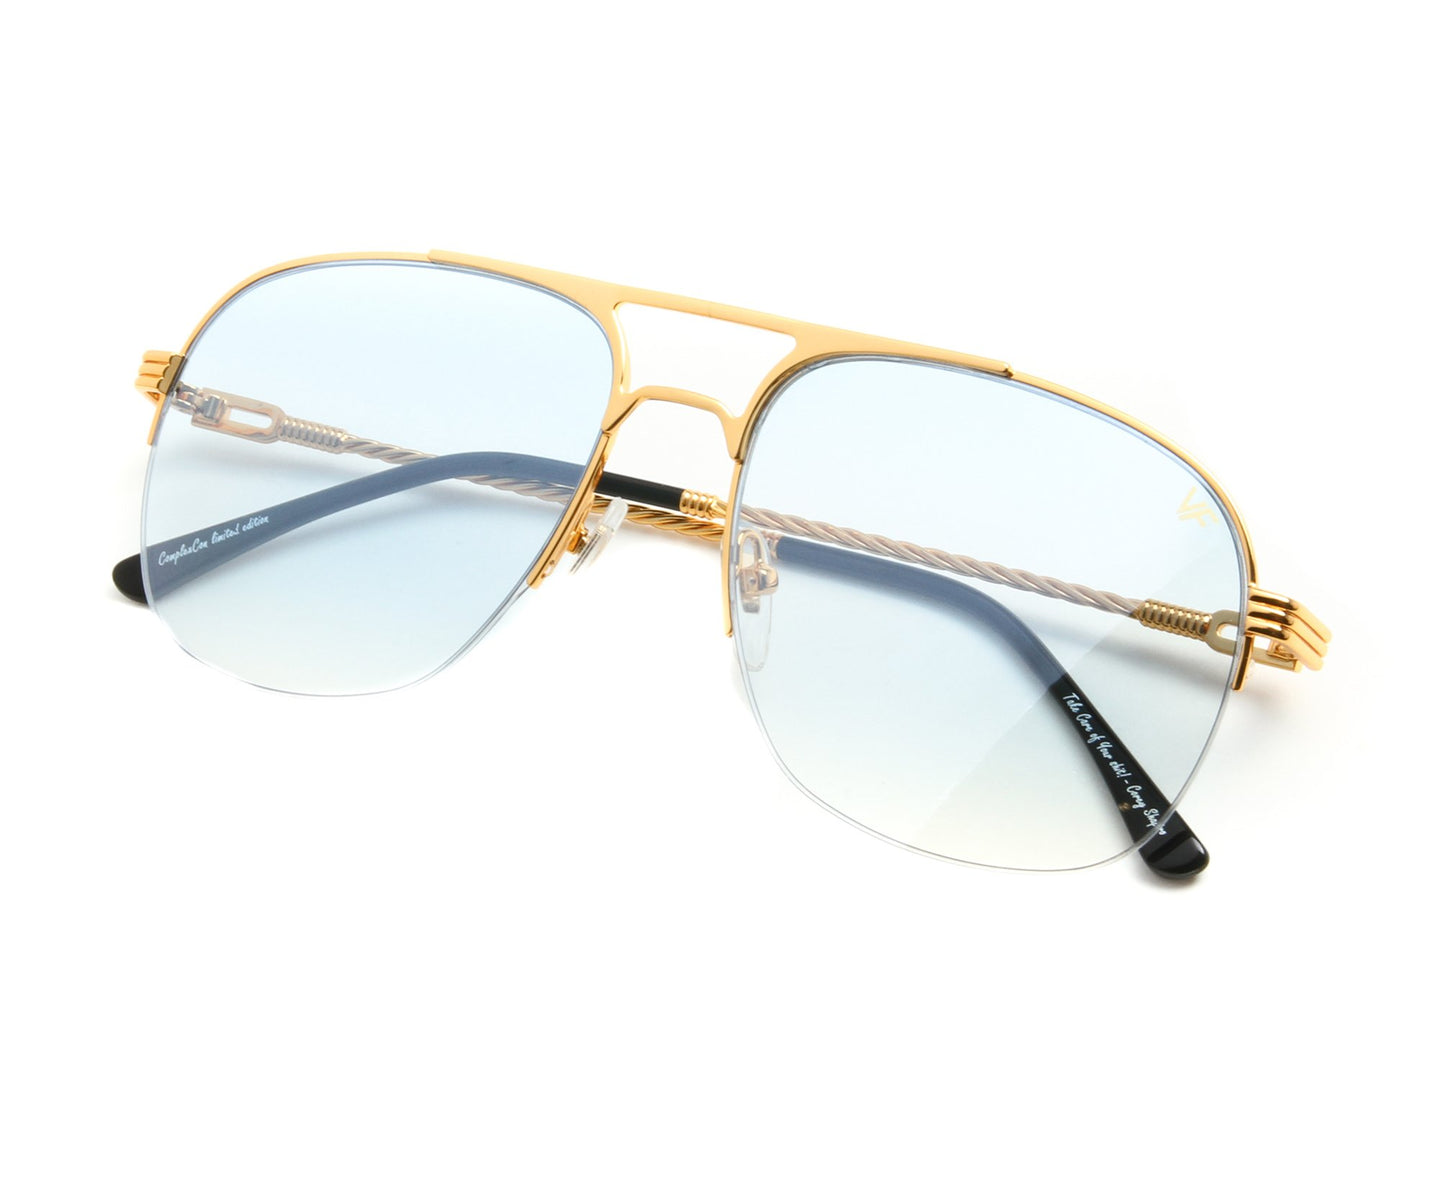 VF Snatch Half Rim 18KT Gold (Tiffany Blue) Thumb, VF by Vintage Frames , glasses frames, eyeglasses online, eyeglass frames, mens glasses, womens glasses, buy glasses online, designer eyeglasses, vintage sunglasses, retro sunglasses, vintage glasses, sunglass, eyeglass, glasses, lens, vintage frames company, vf